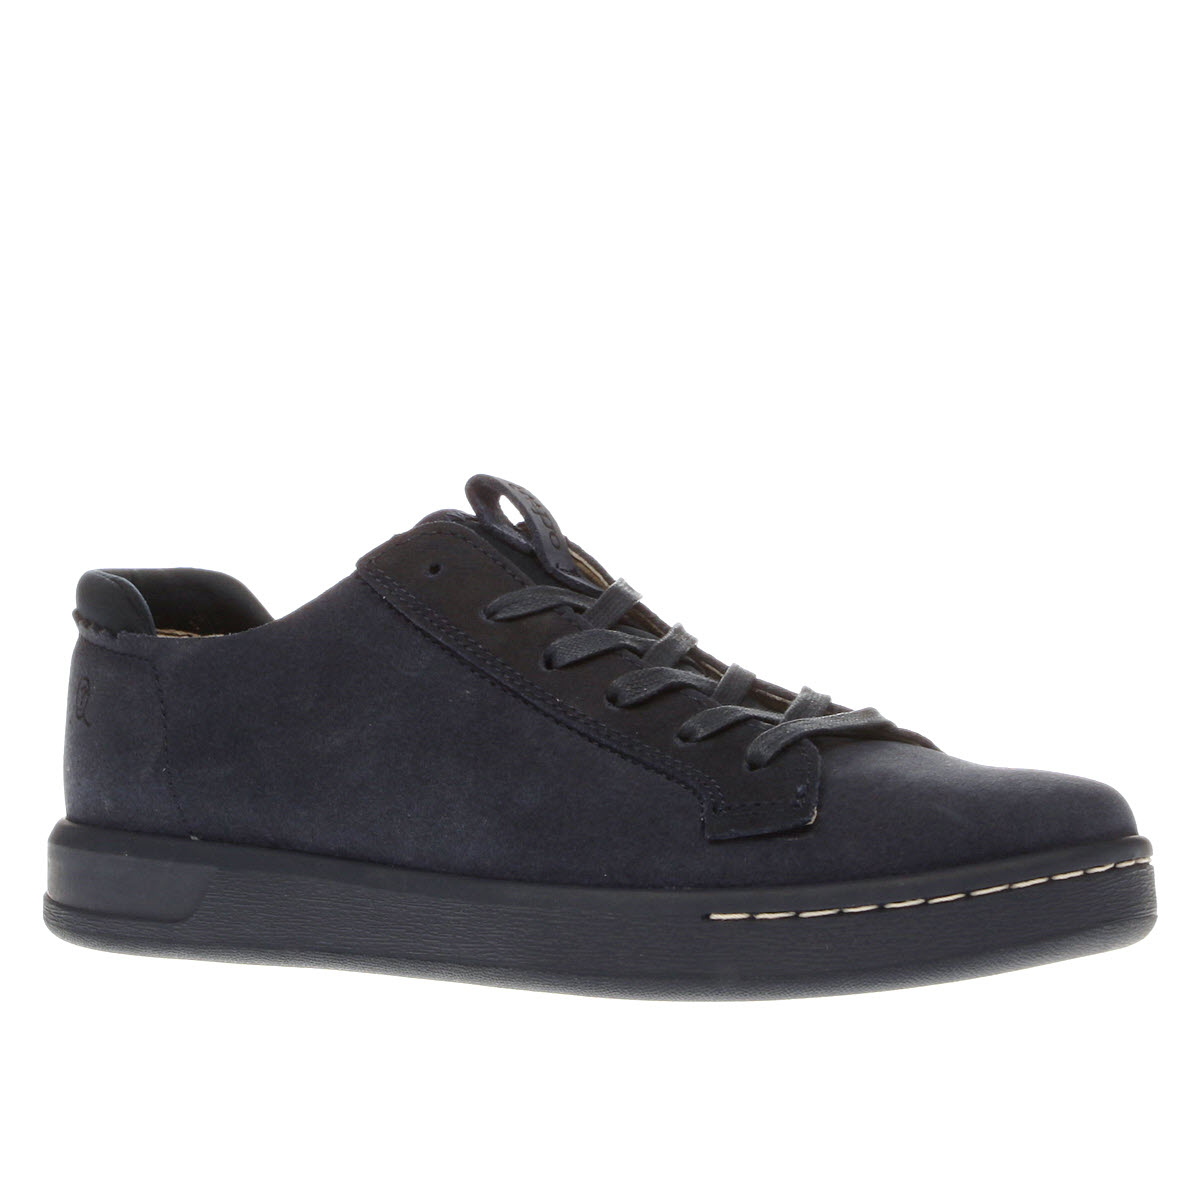 ohw? Ohw? Navy Dodge Shoes